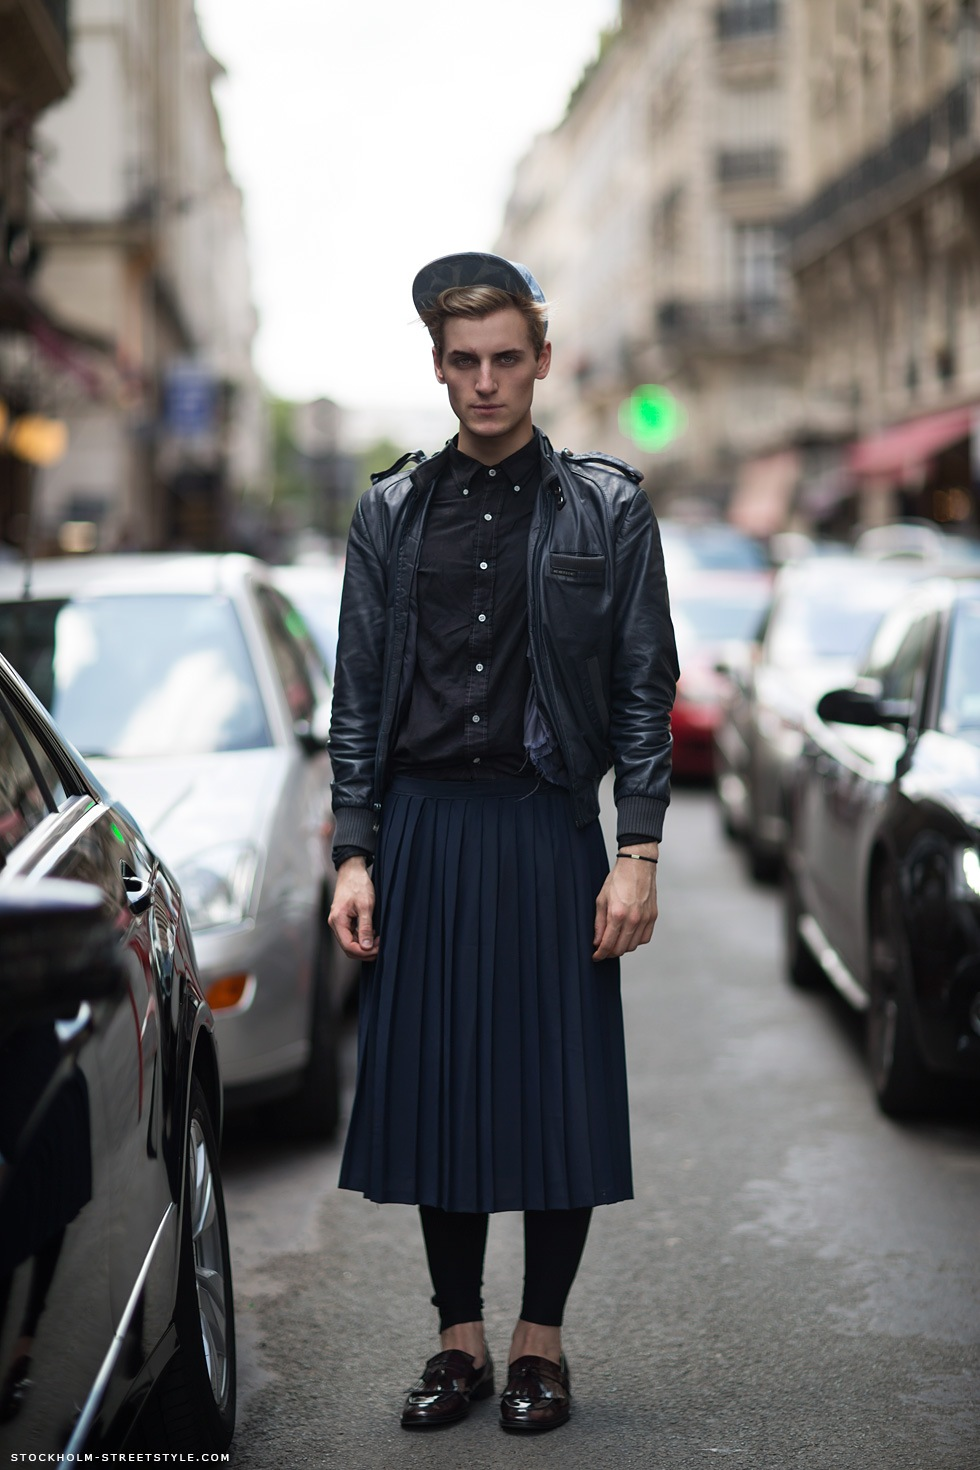 wpid-Leather-Skirts-For-Men-2014-2015-3.jpg